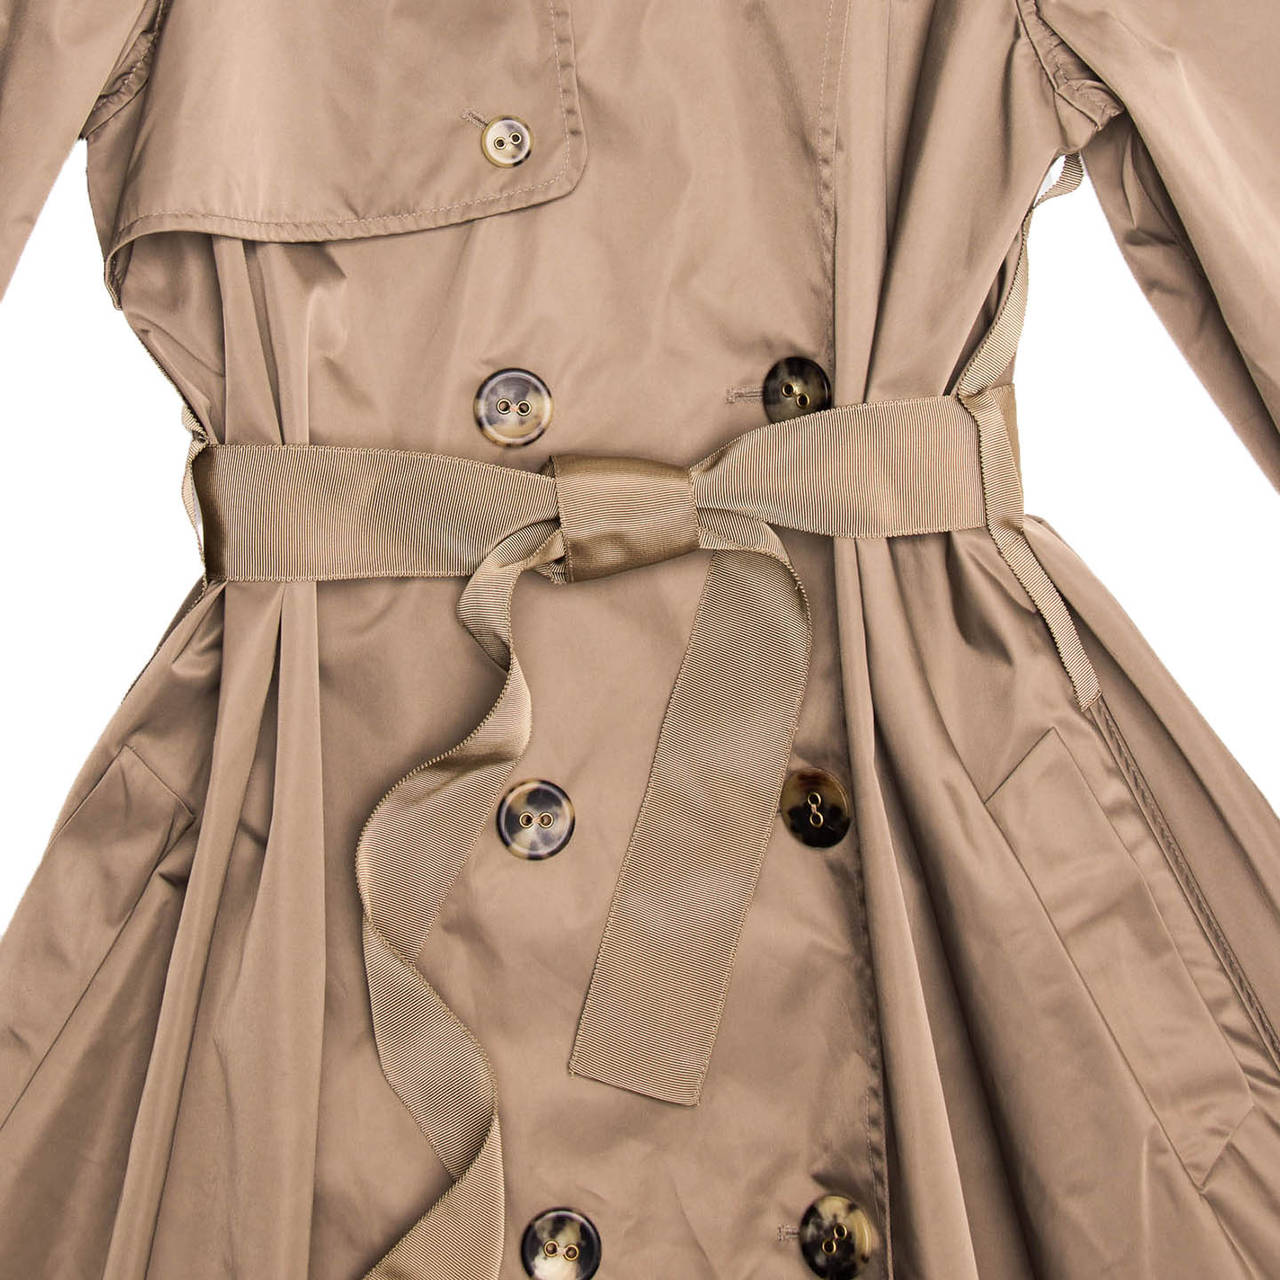 Lanvin Coat - 2008 Taupe Bell Shape Raincoat With Ribbon Belt 2